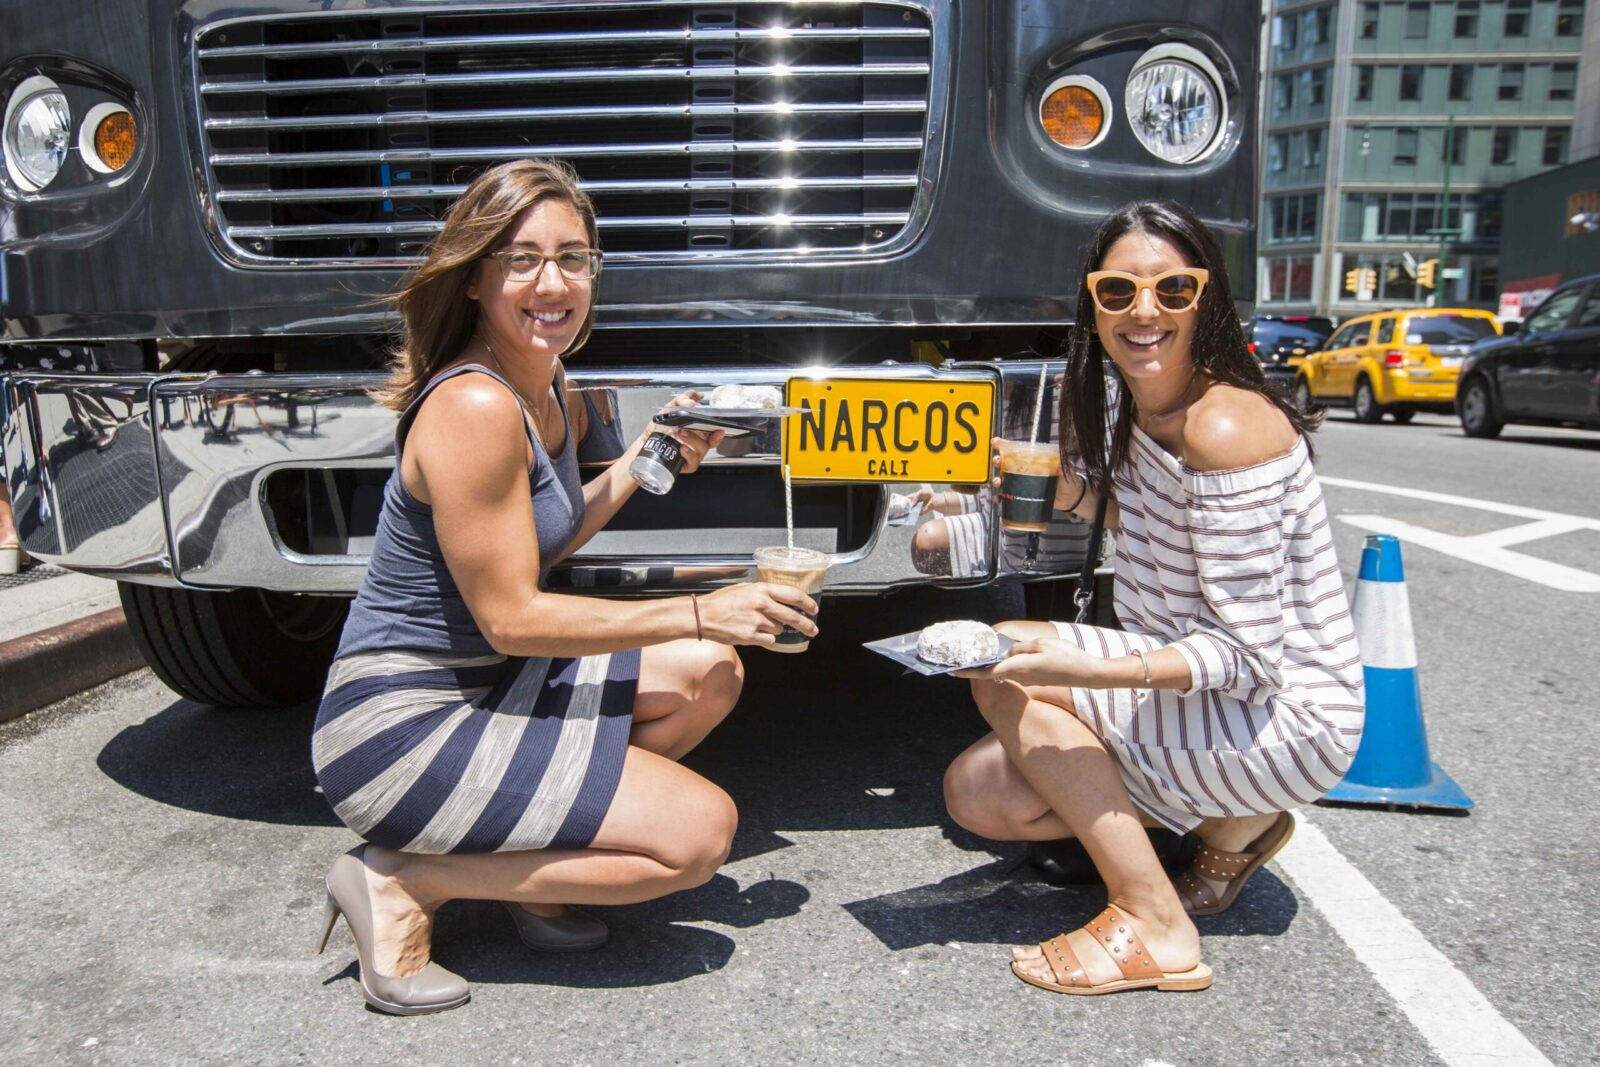 women posing with the food truck for narcos marketing agency event